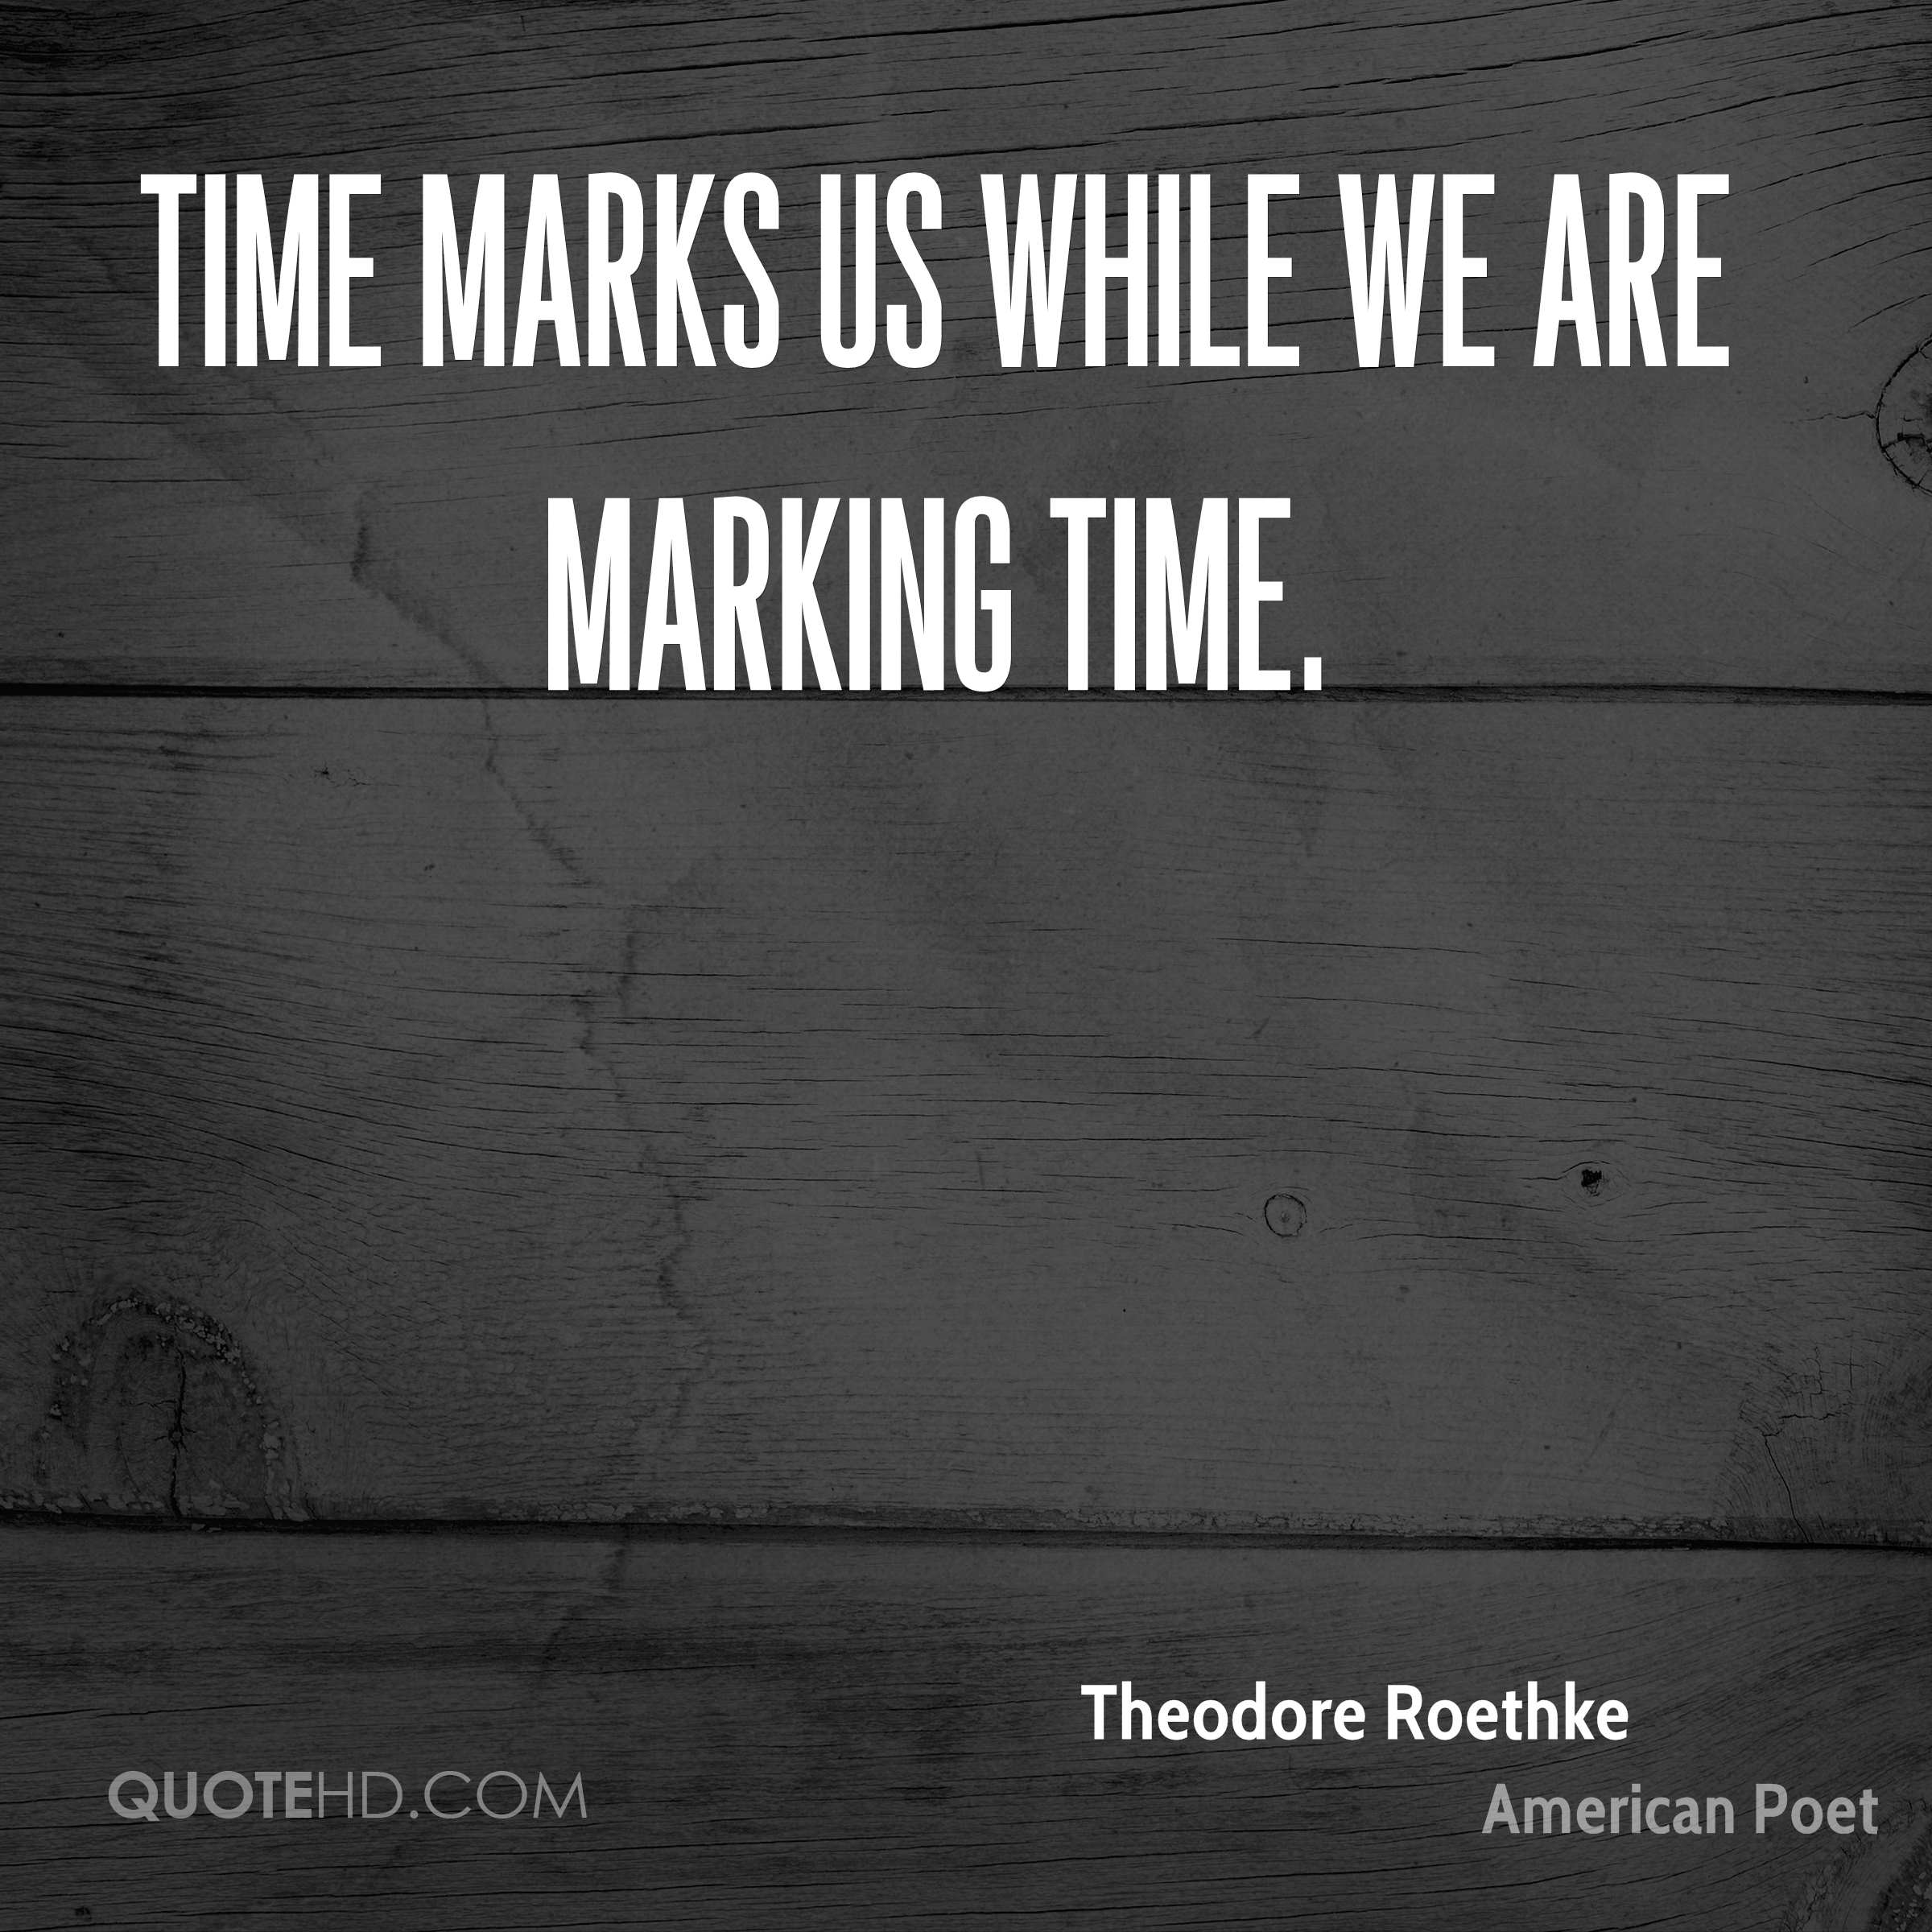 Time marks us while we are marking time.